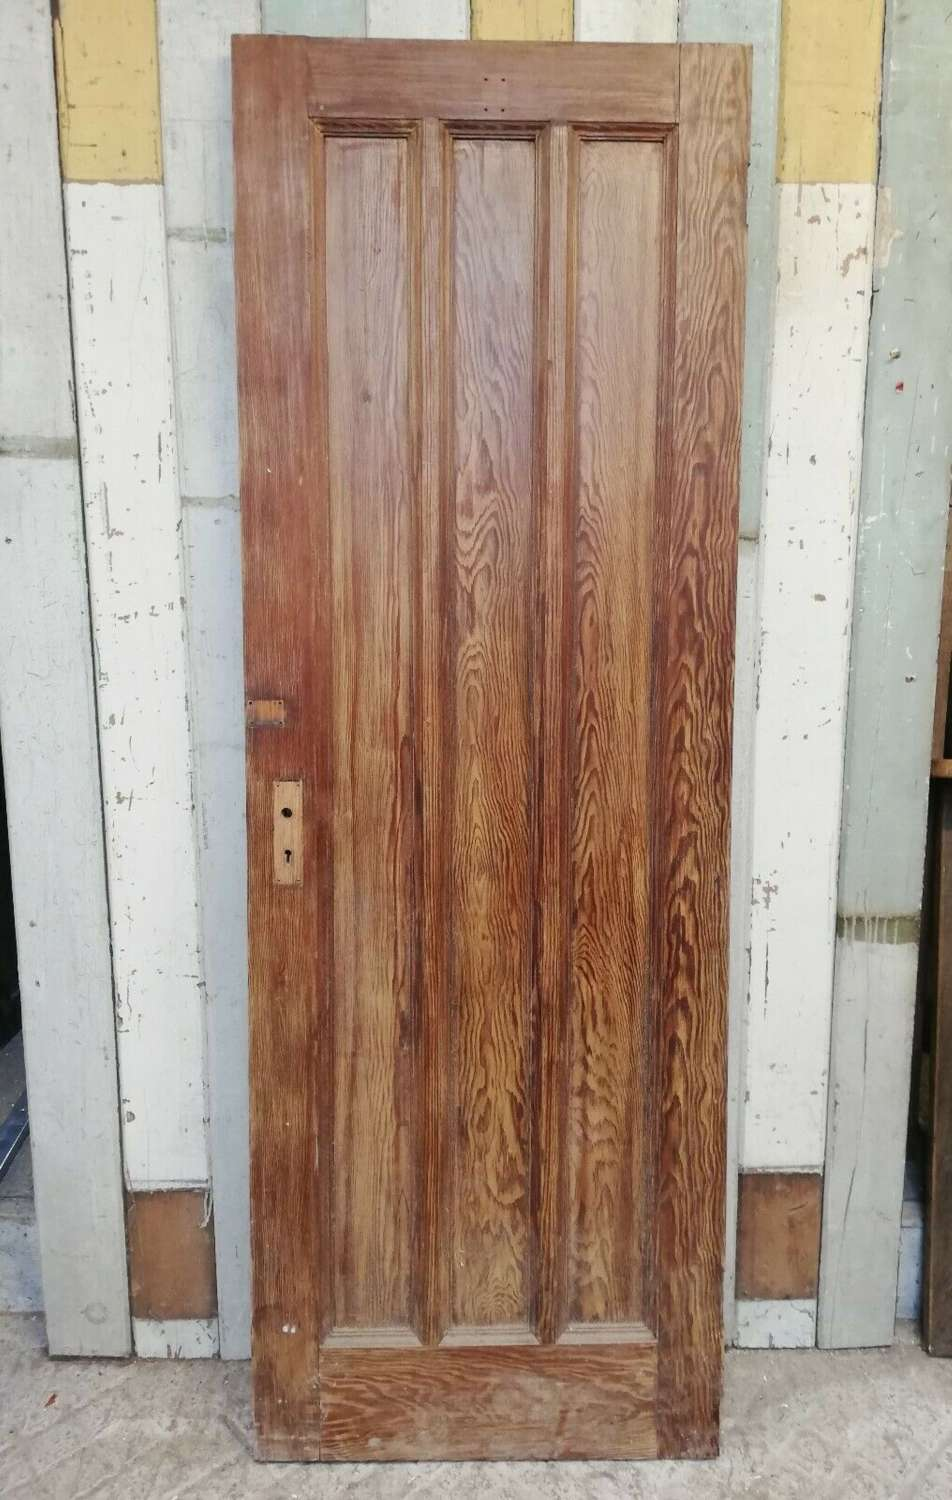 DI0699 A RECLAIMED PITCH PINE ARTS AND CRAFTS INTERNAL DOOR